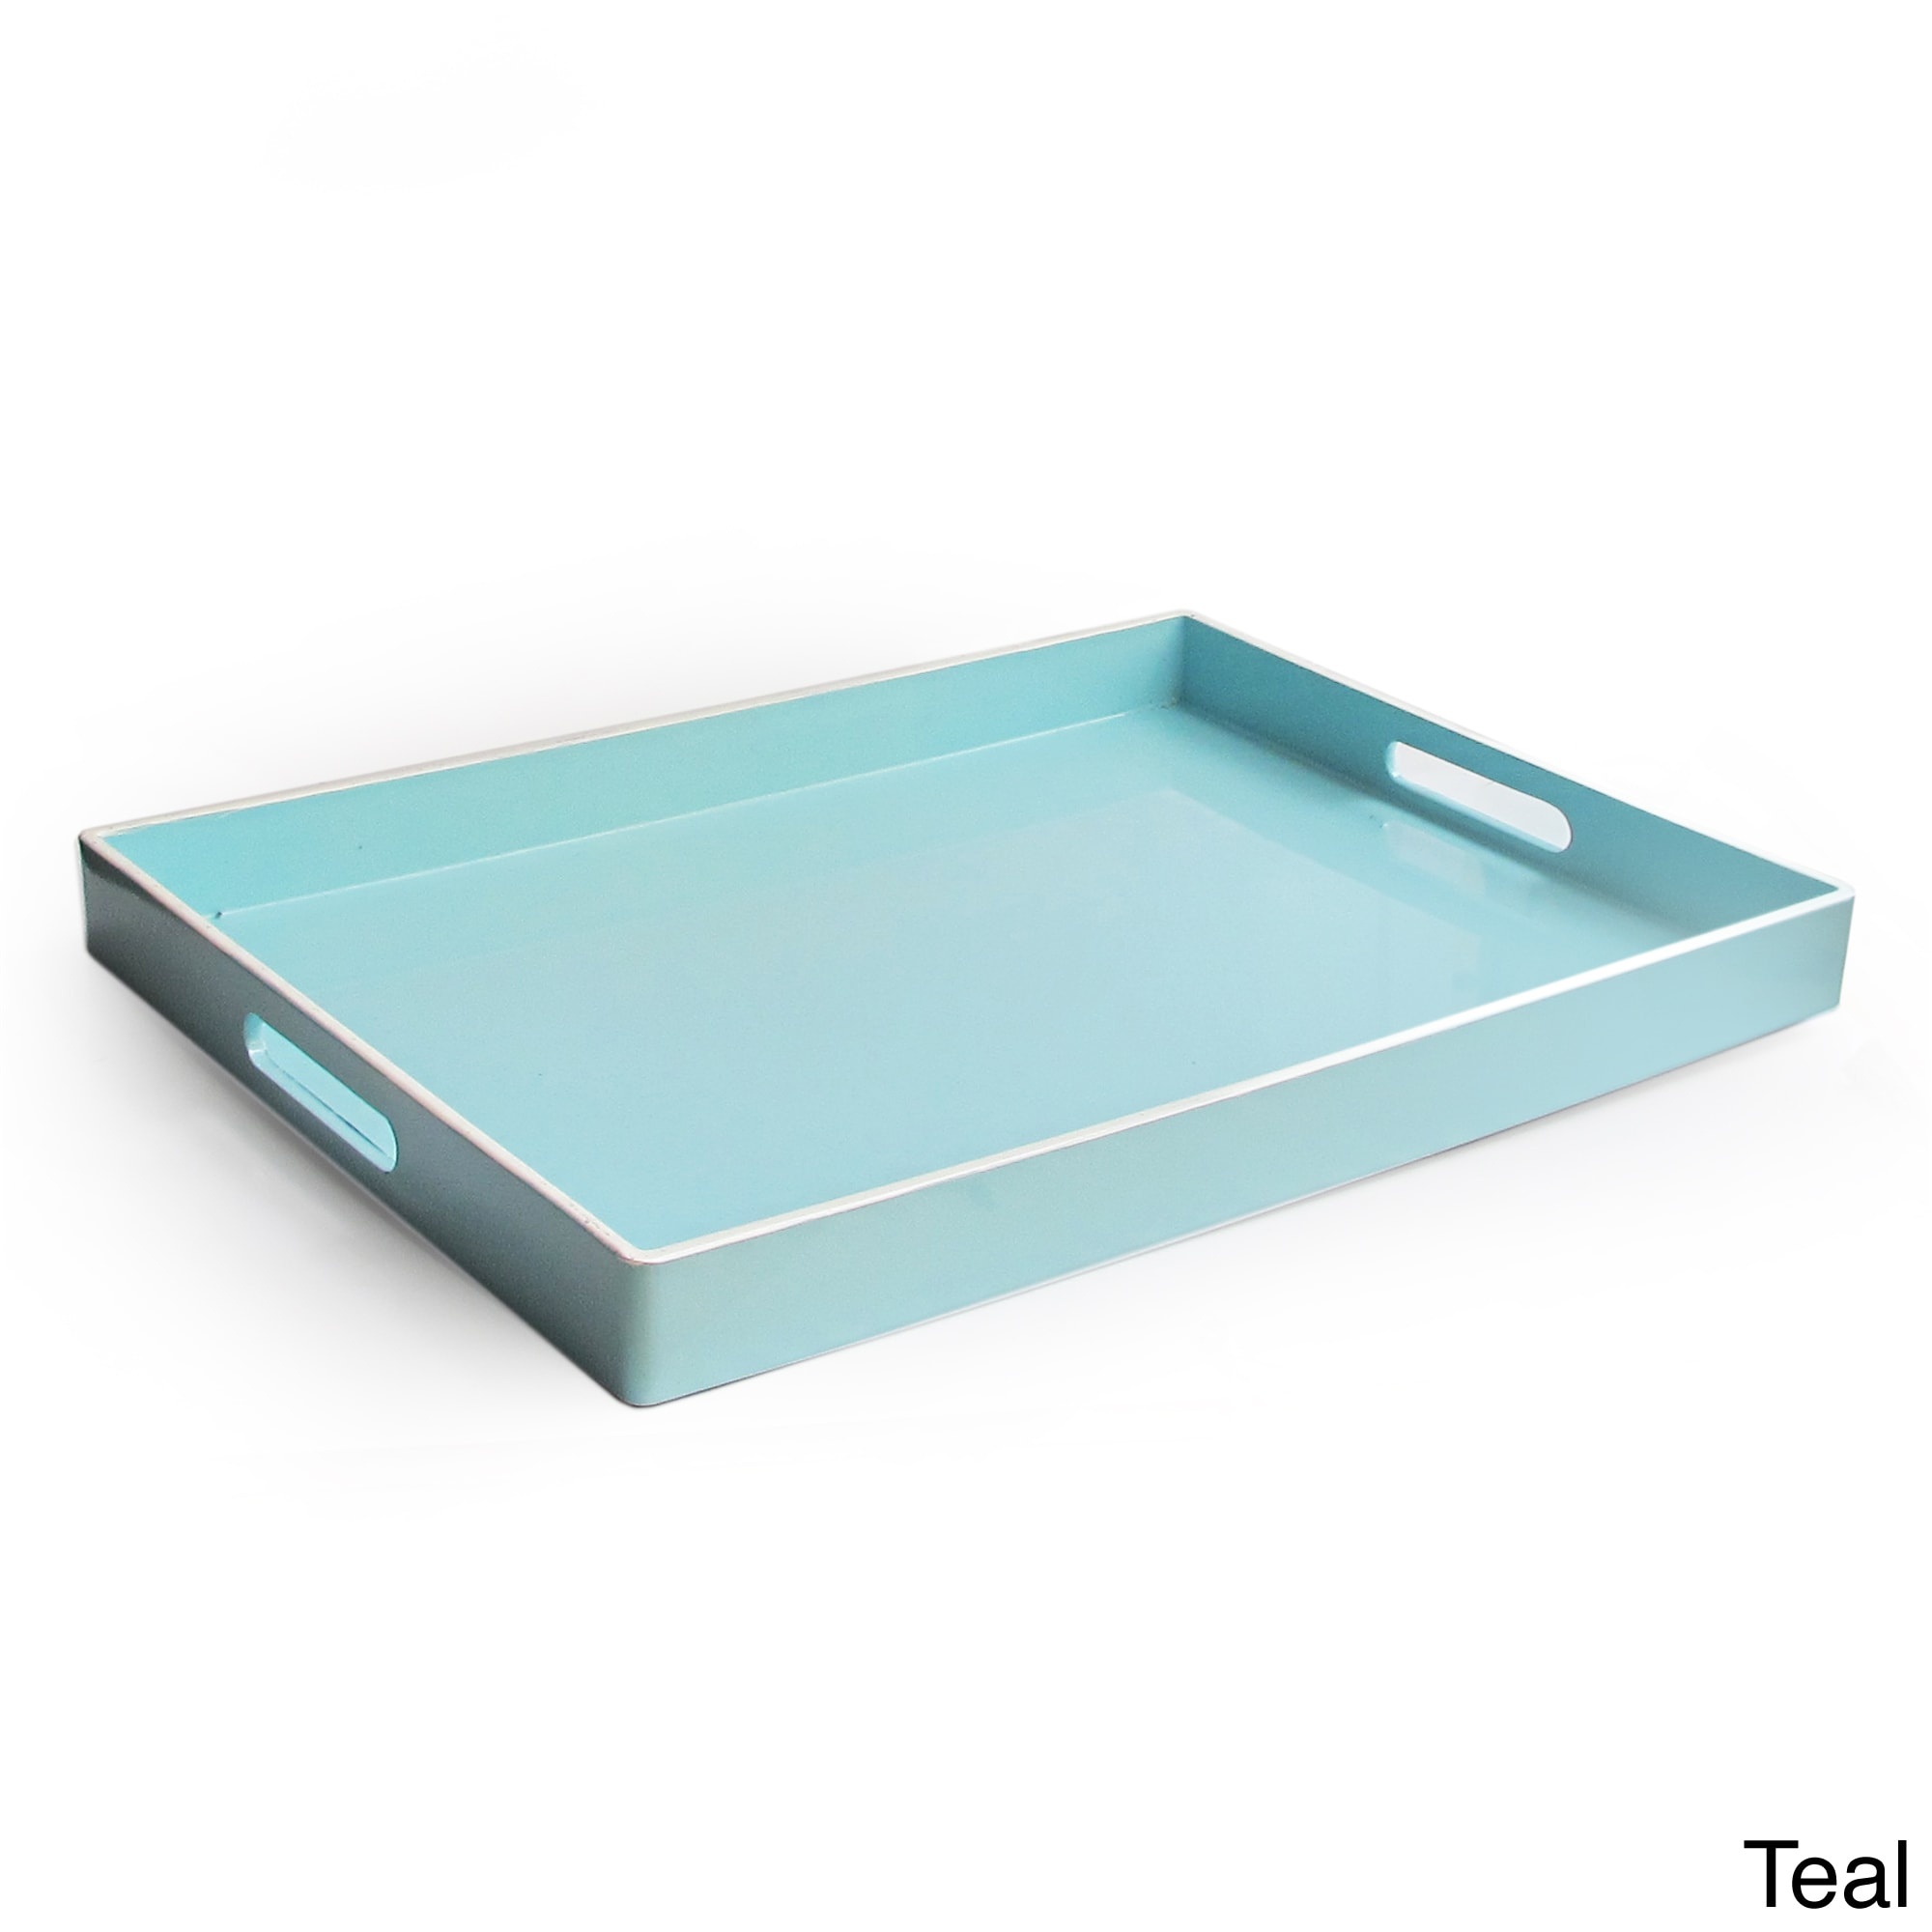 Excellent Rectangular Serving Tray with Handles - Free Shipping On Orders  KG83